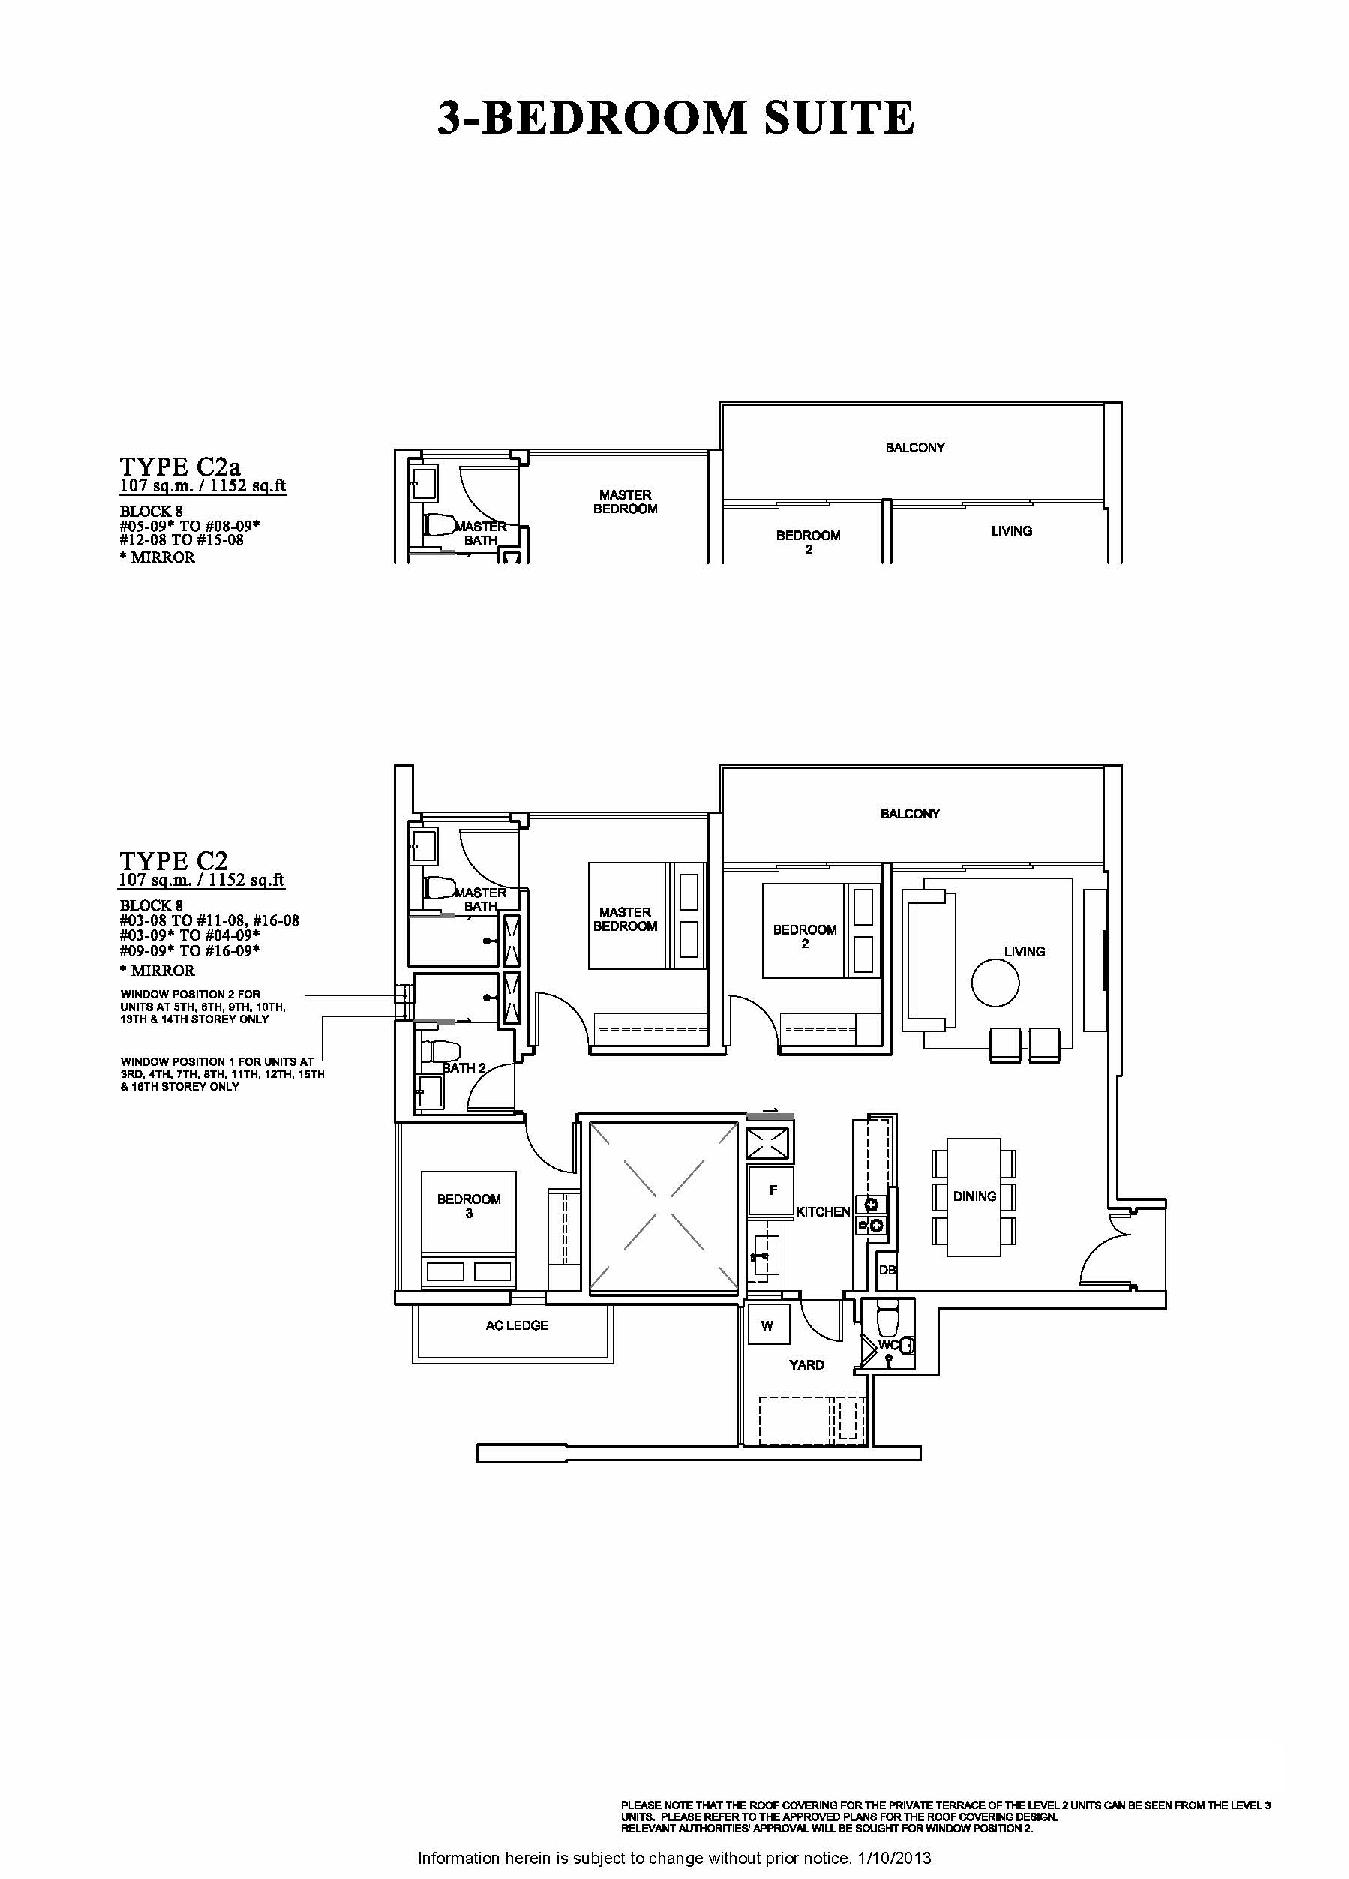 The Venue Residences 3 Bedroom Suite Floor Plan Type C2a and C2